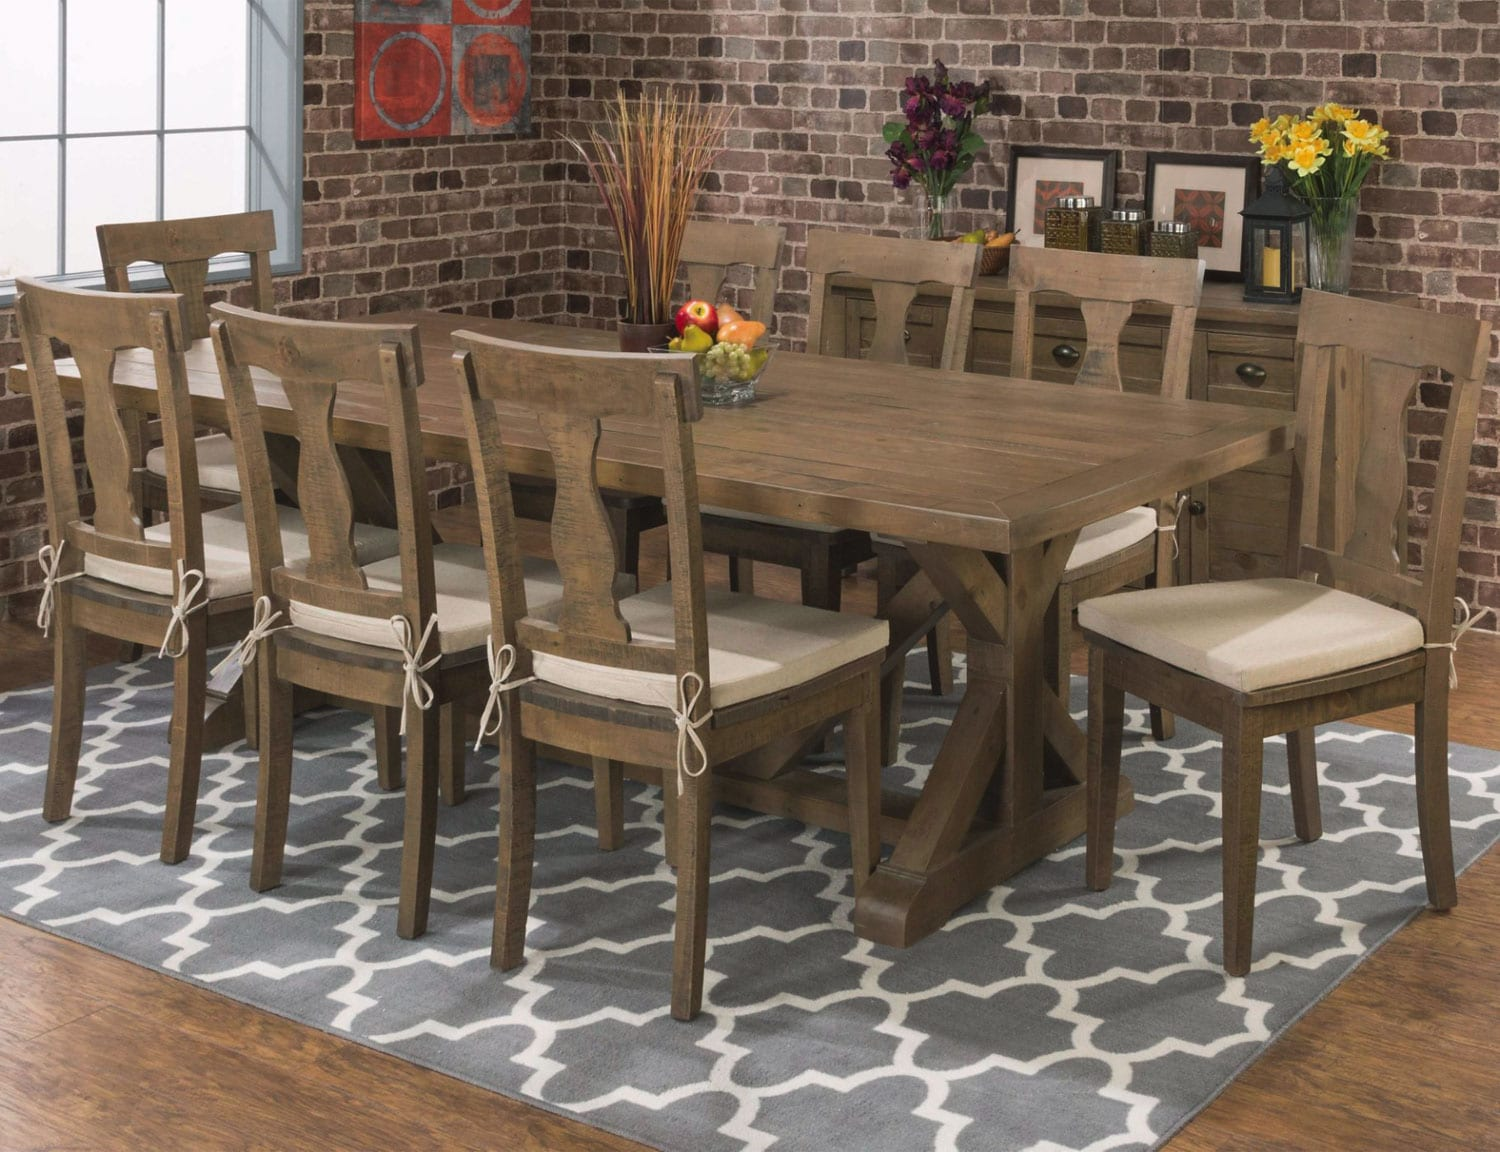 Tuscan Crossing Table and 4 Chairs